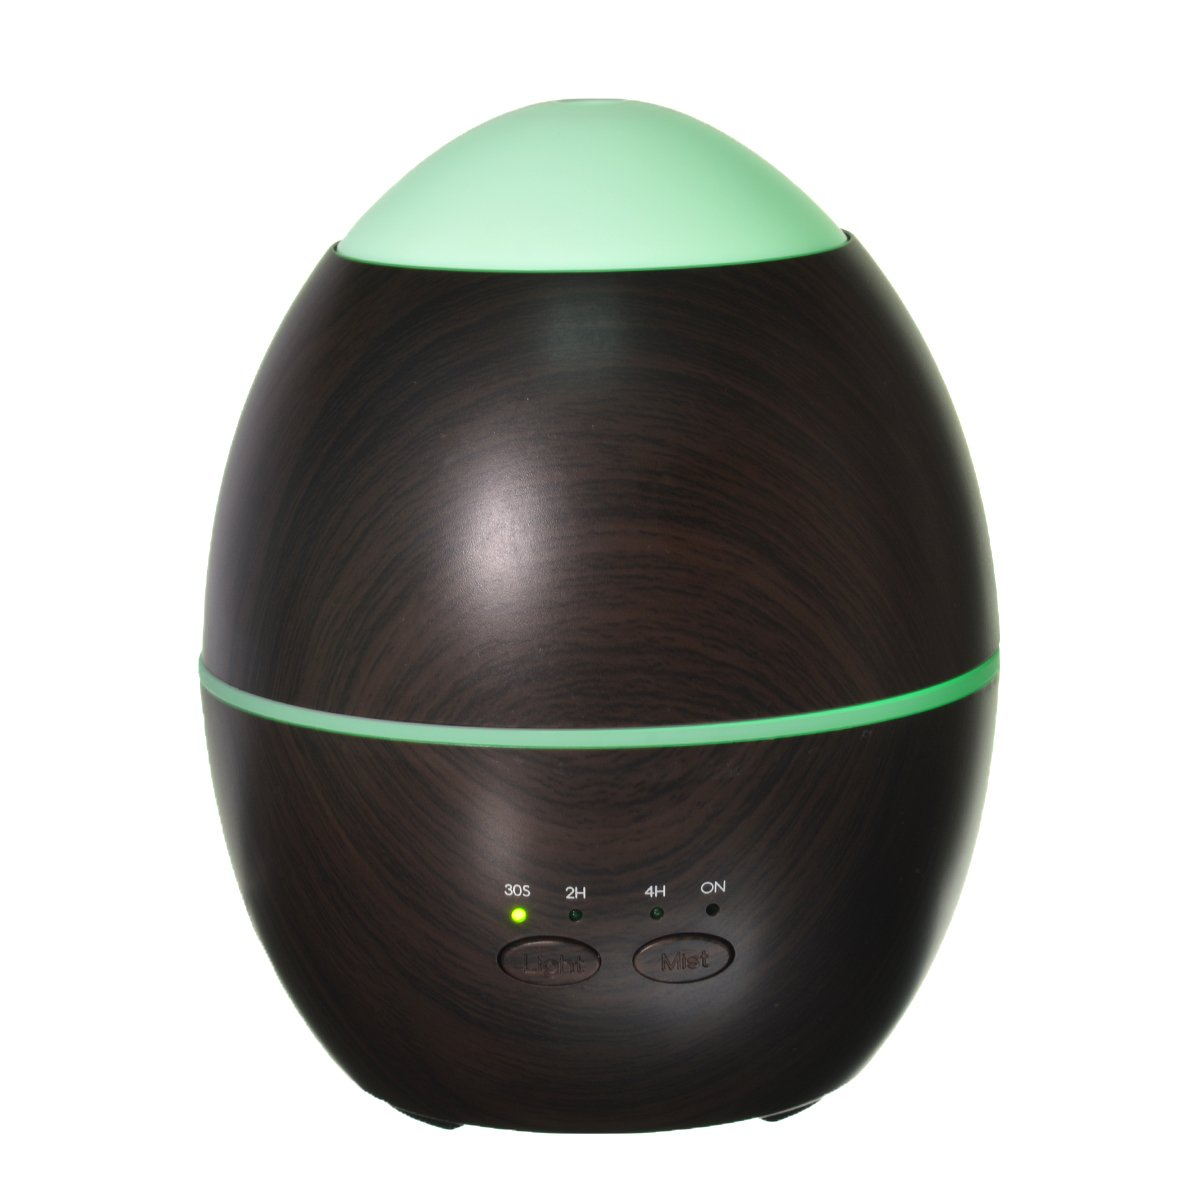 Aroma Diffuser,ELEGIANT Wood Grain Essential Oil Diffuser Humidifier-300ML Diffuser Cool Mist Humidifier Air Purifier for Home, Yoga, Office, Spa,Waterless Auto Shut-off and 7 LED Colors Black